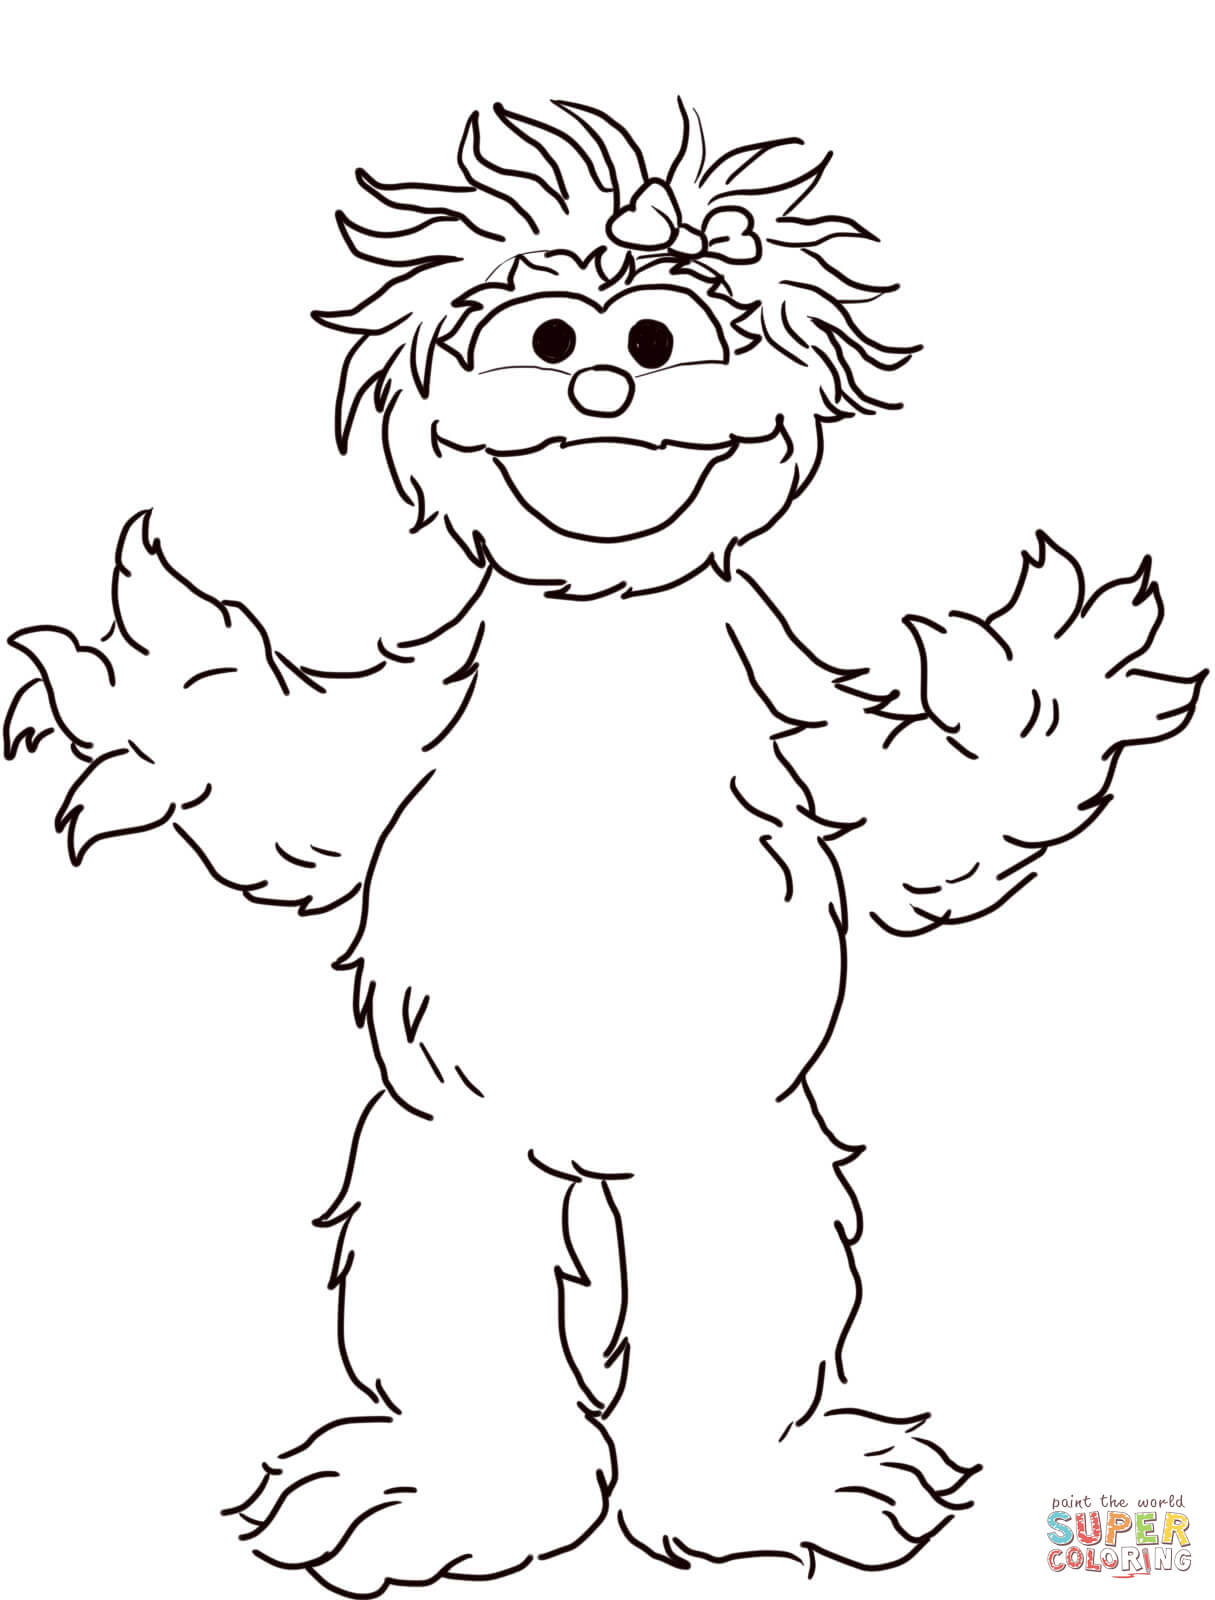 Sesame Street Rosita Coloring Page   Free Printable Coloring Pages - Free Printable Sesame Street Coloring Pages